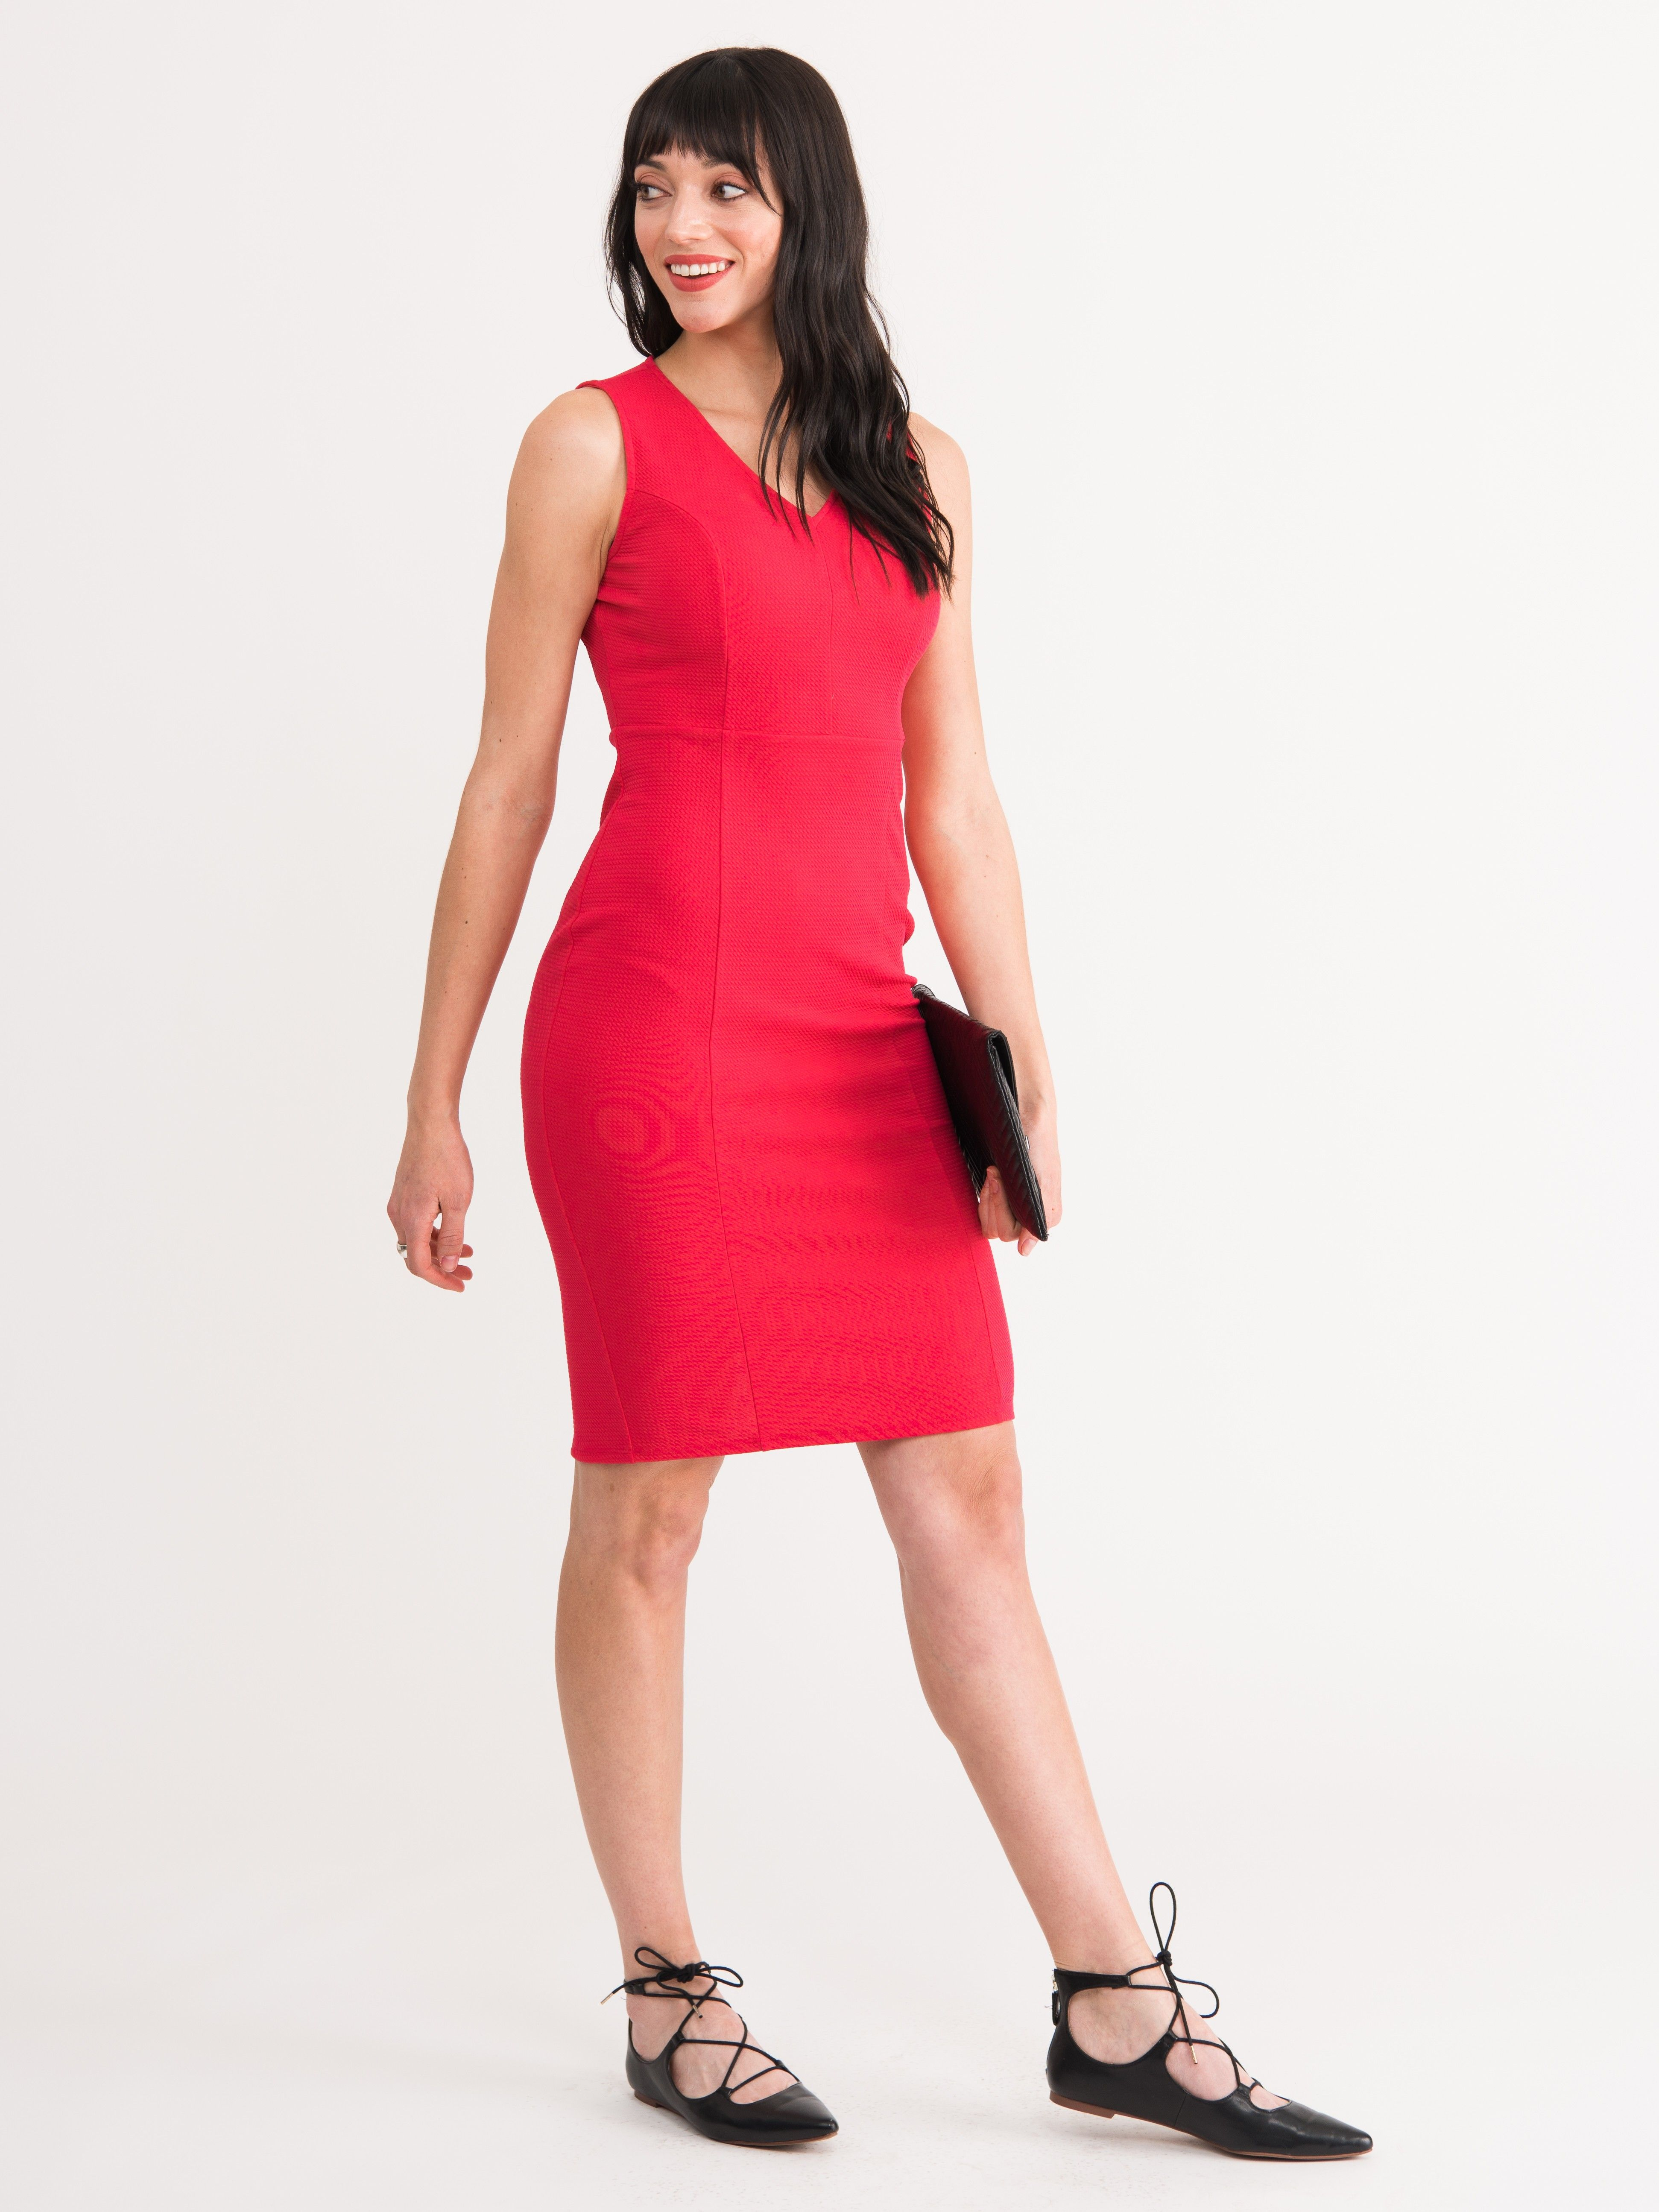 The perfect dress for almost any occasion the office a wedding